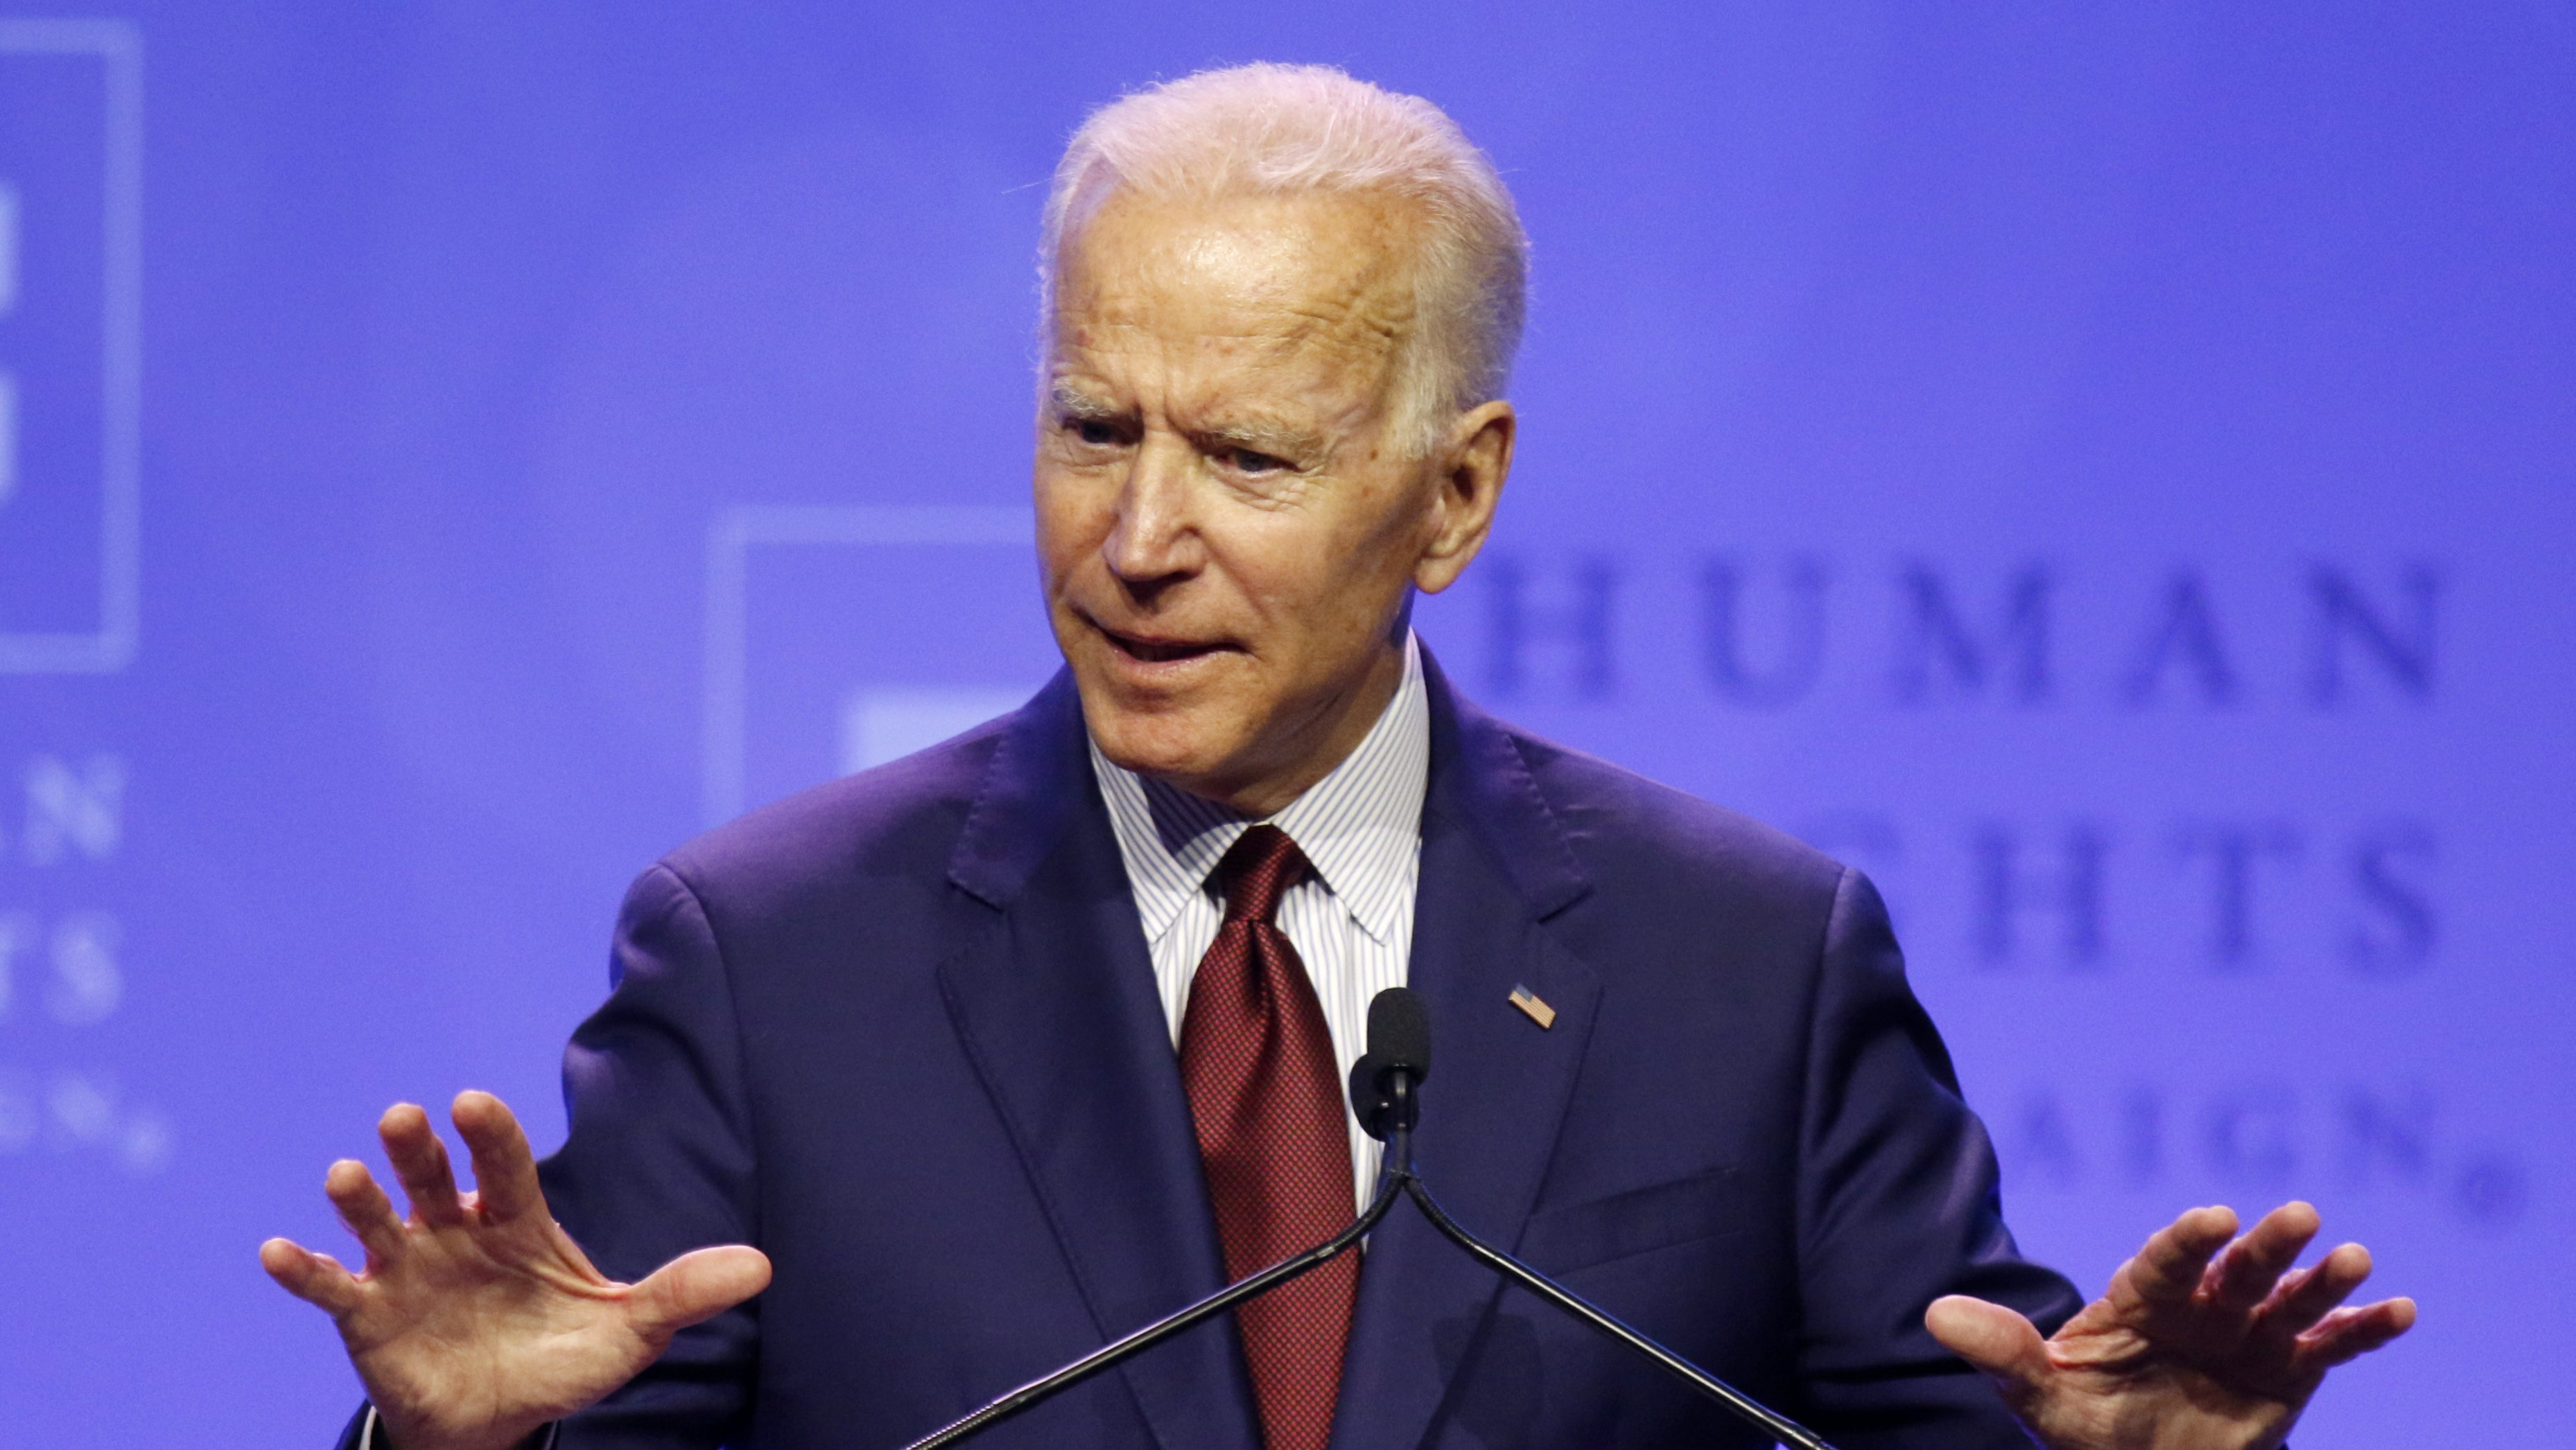 Amazon rebukes Biden, offers lesson on tax code after earlier spat with Warren